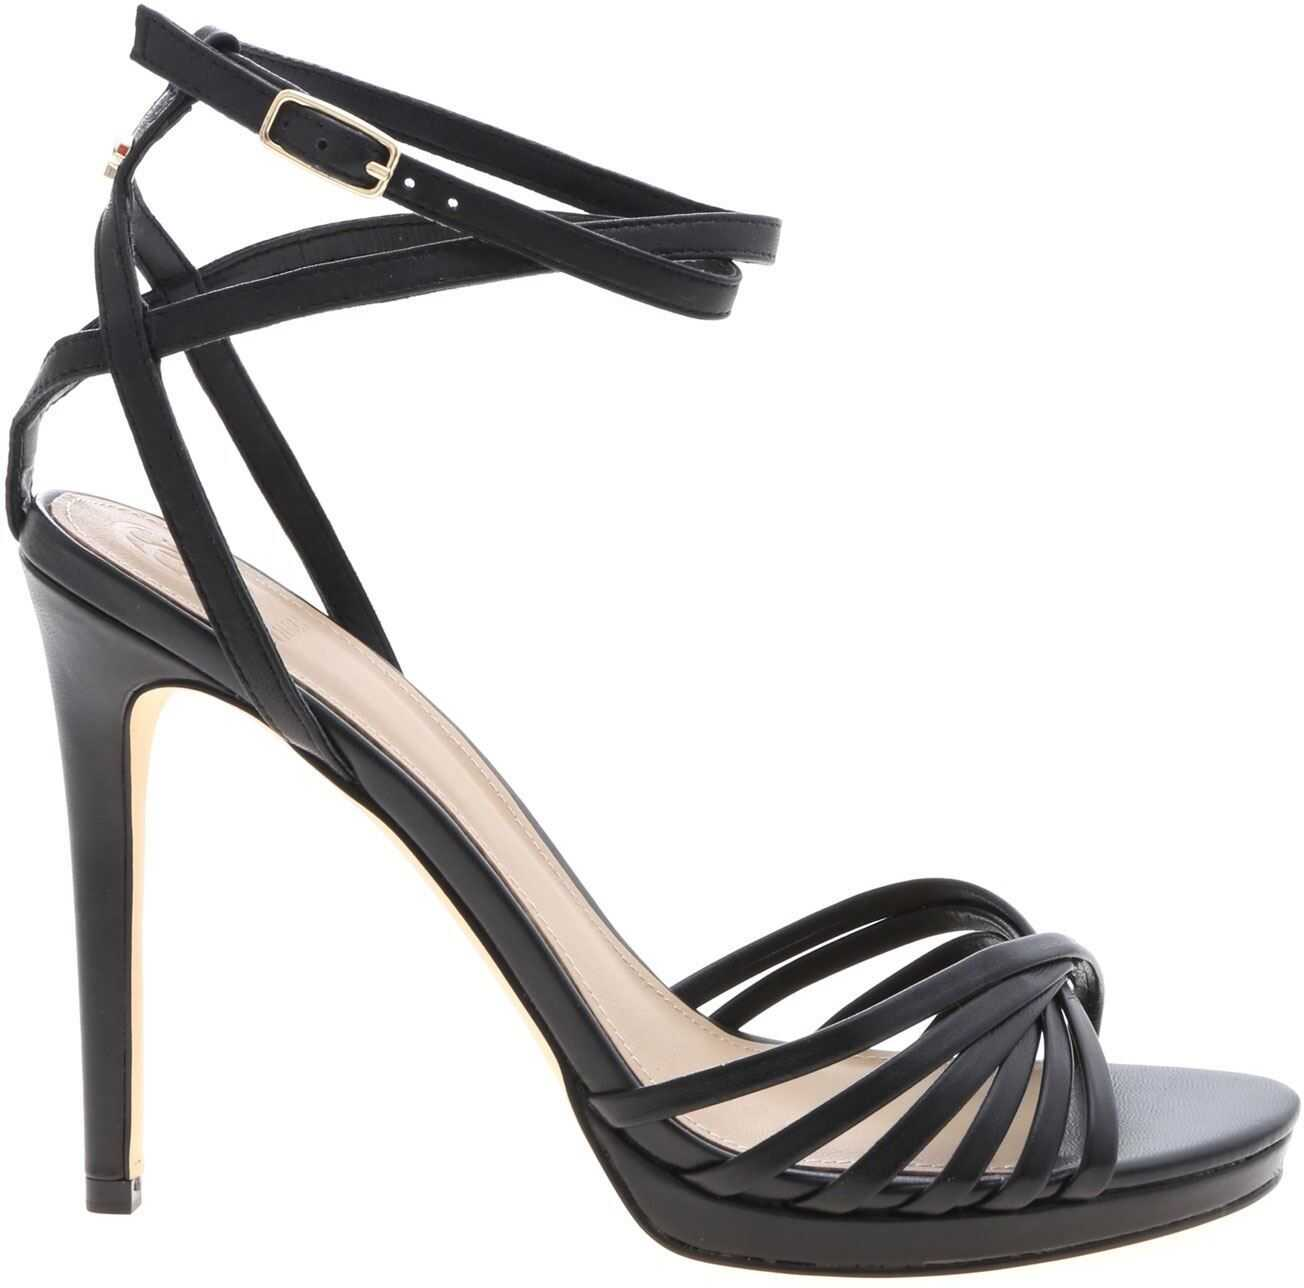 GUESS Tonya Sandals In Black Leather Black